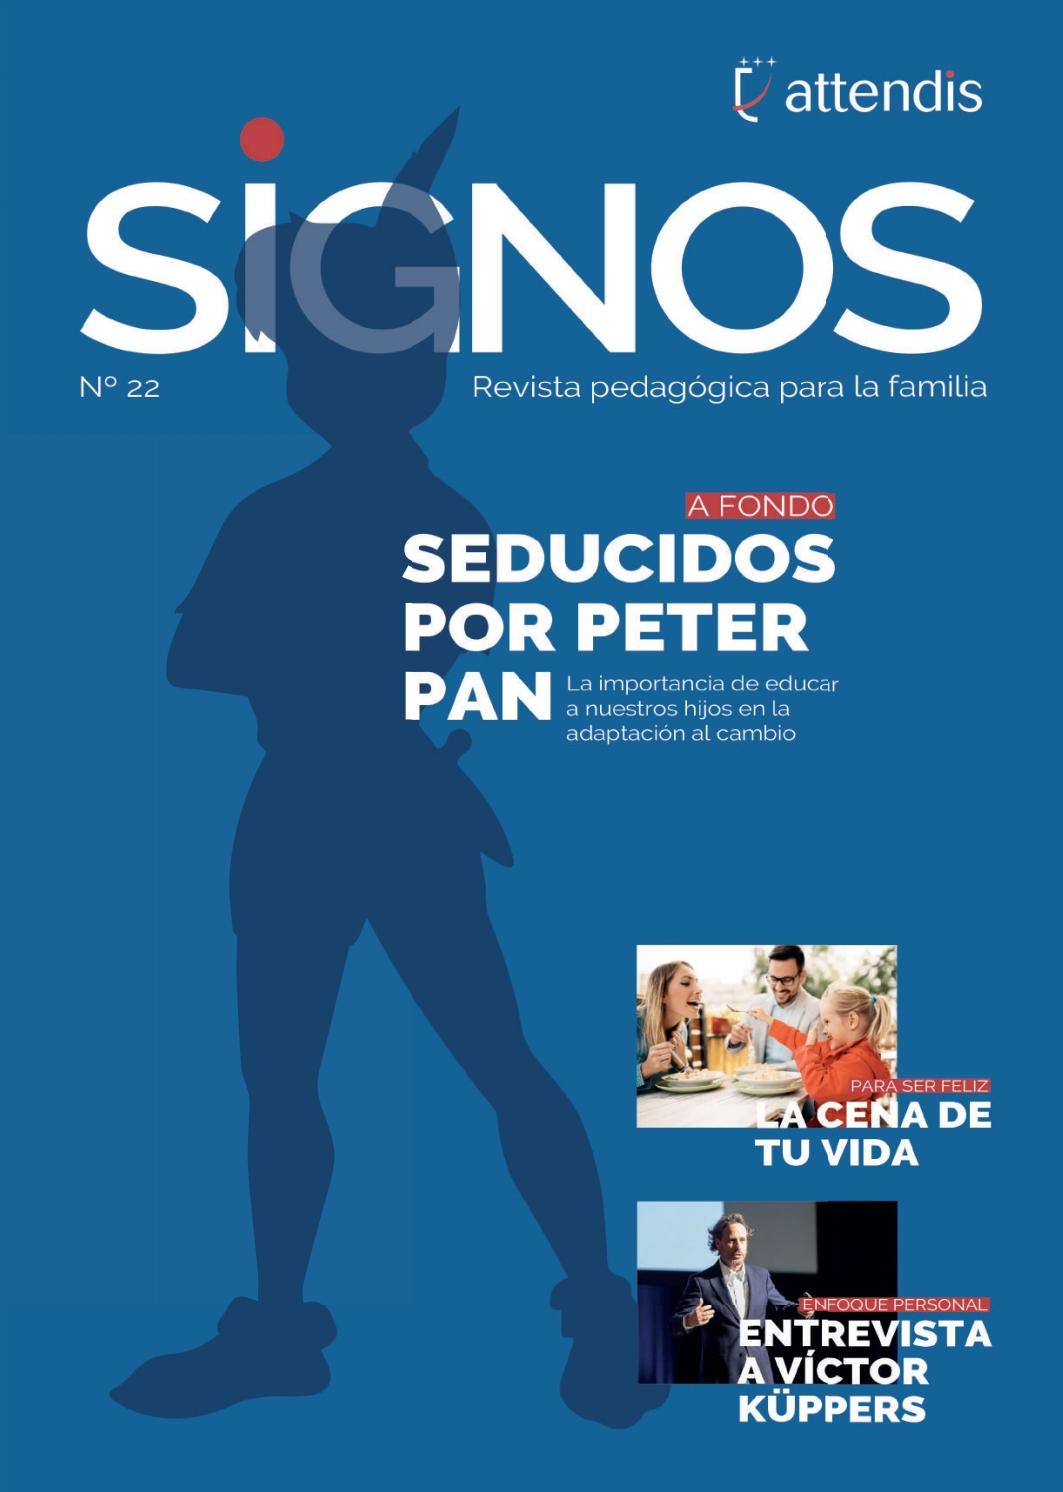 Libro Victor Kuppers Signos 22 By Attendis Issuu